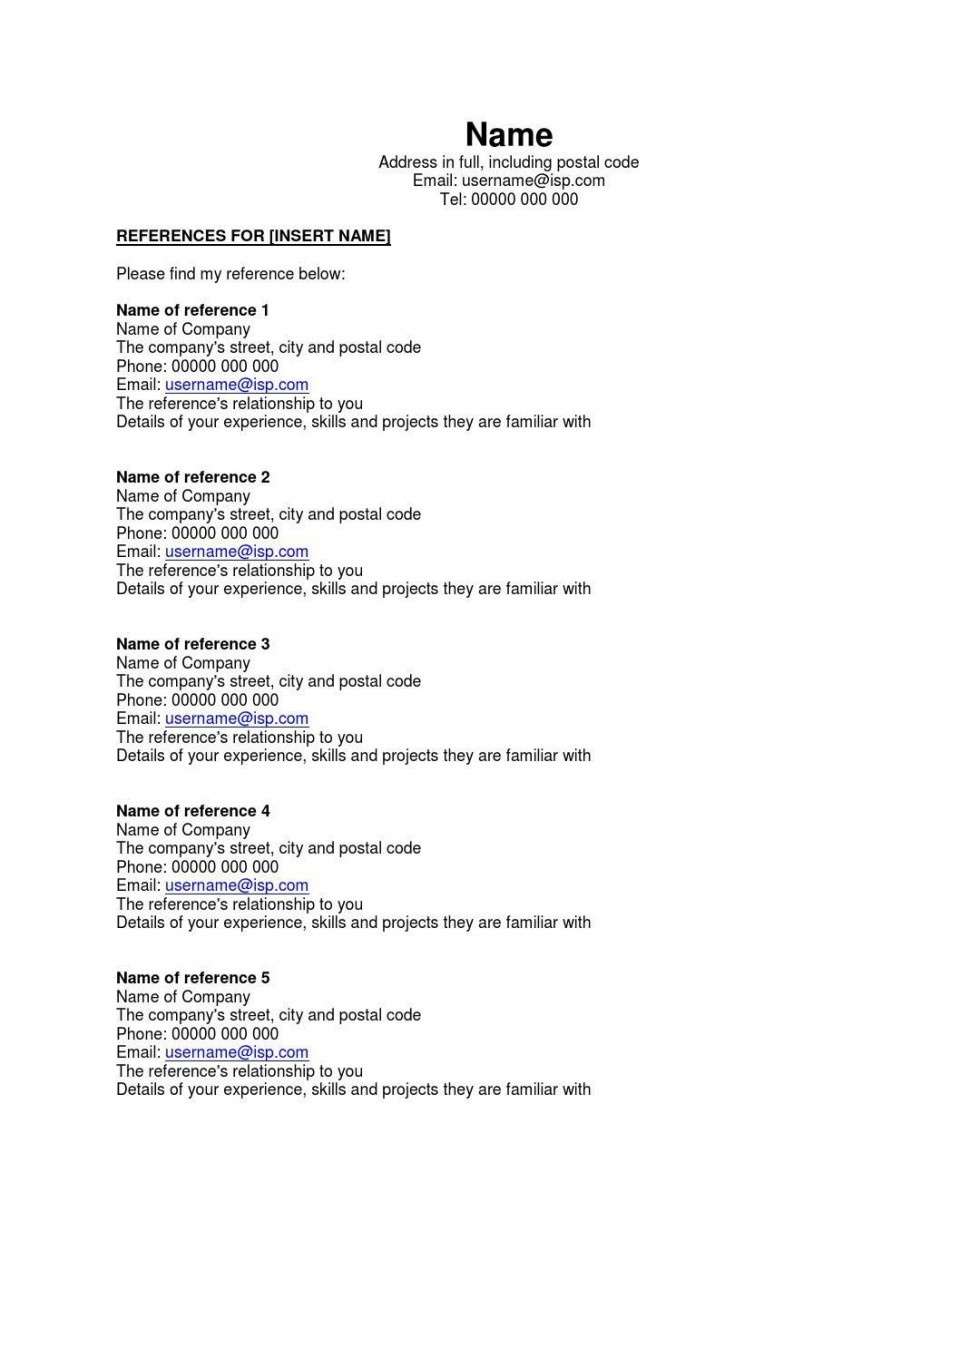 002 Astounding Resume Reference List Template Microsoft Word High Resolution 960